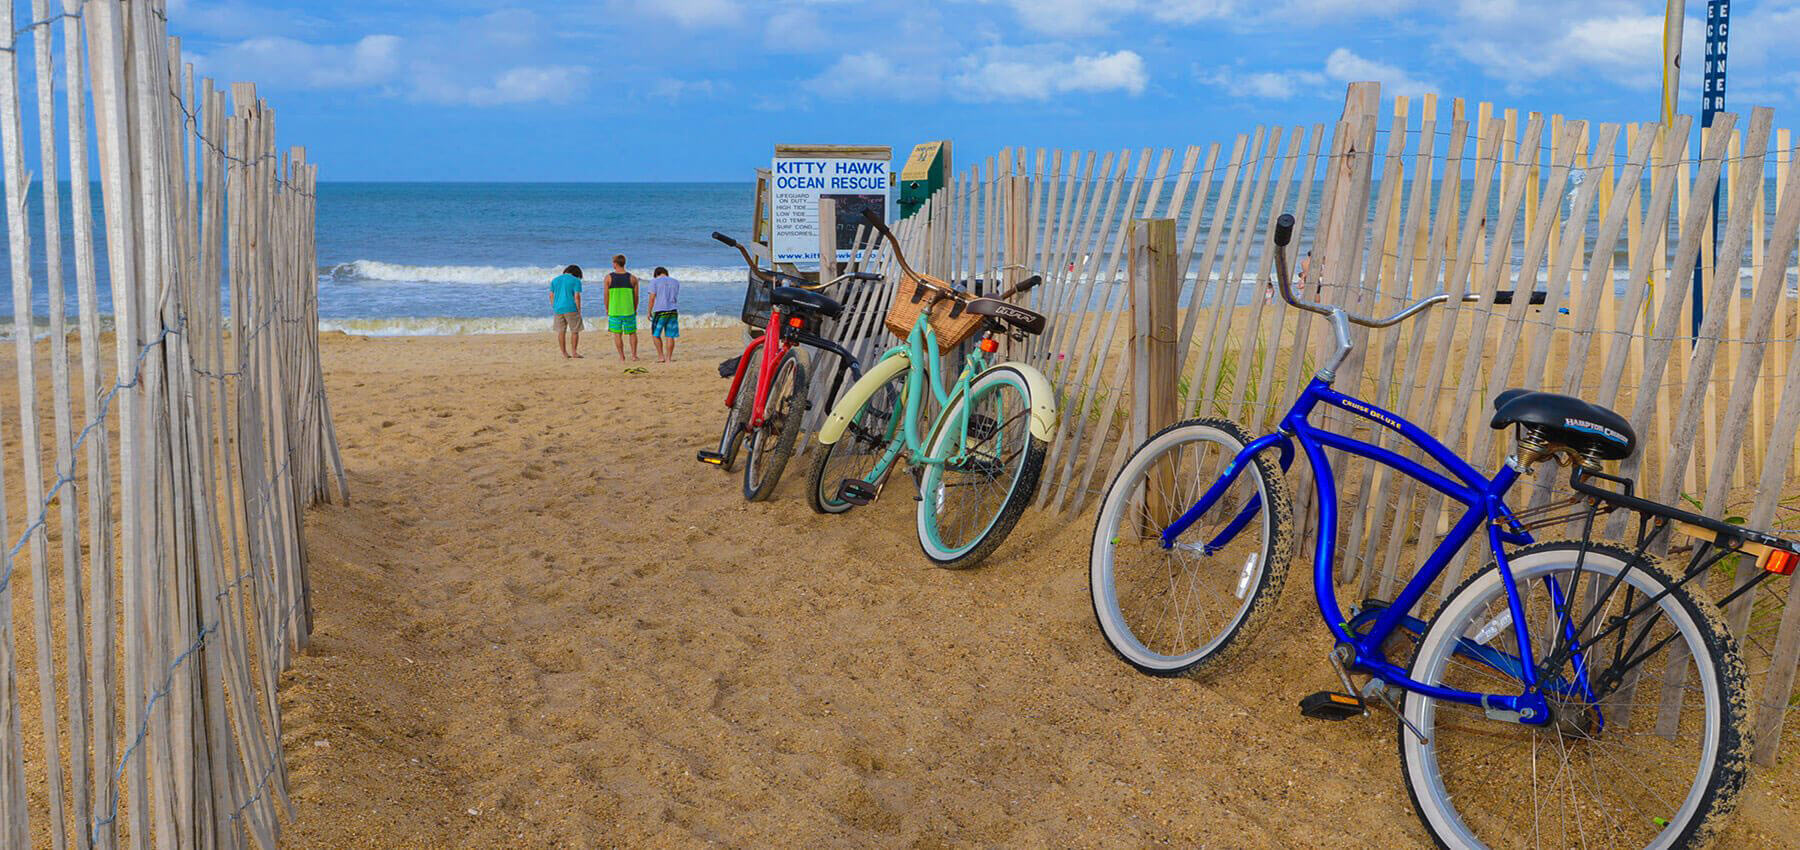 Kitty Hawk Bikes in Beach OBX